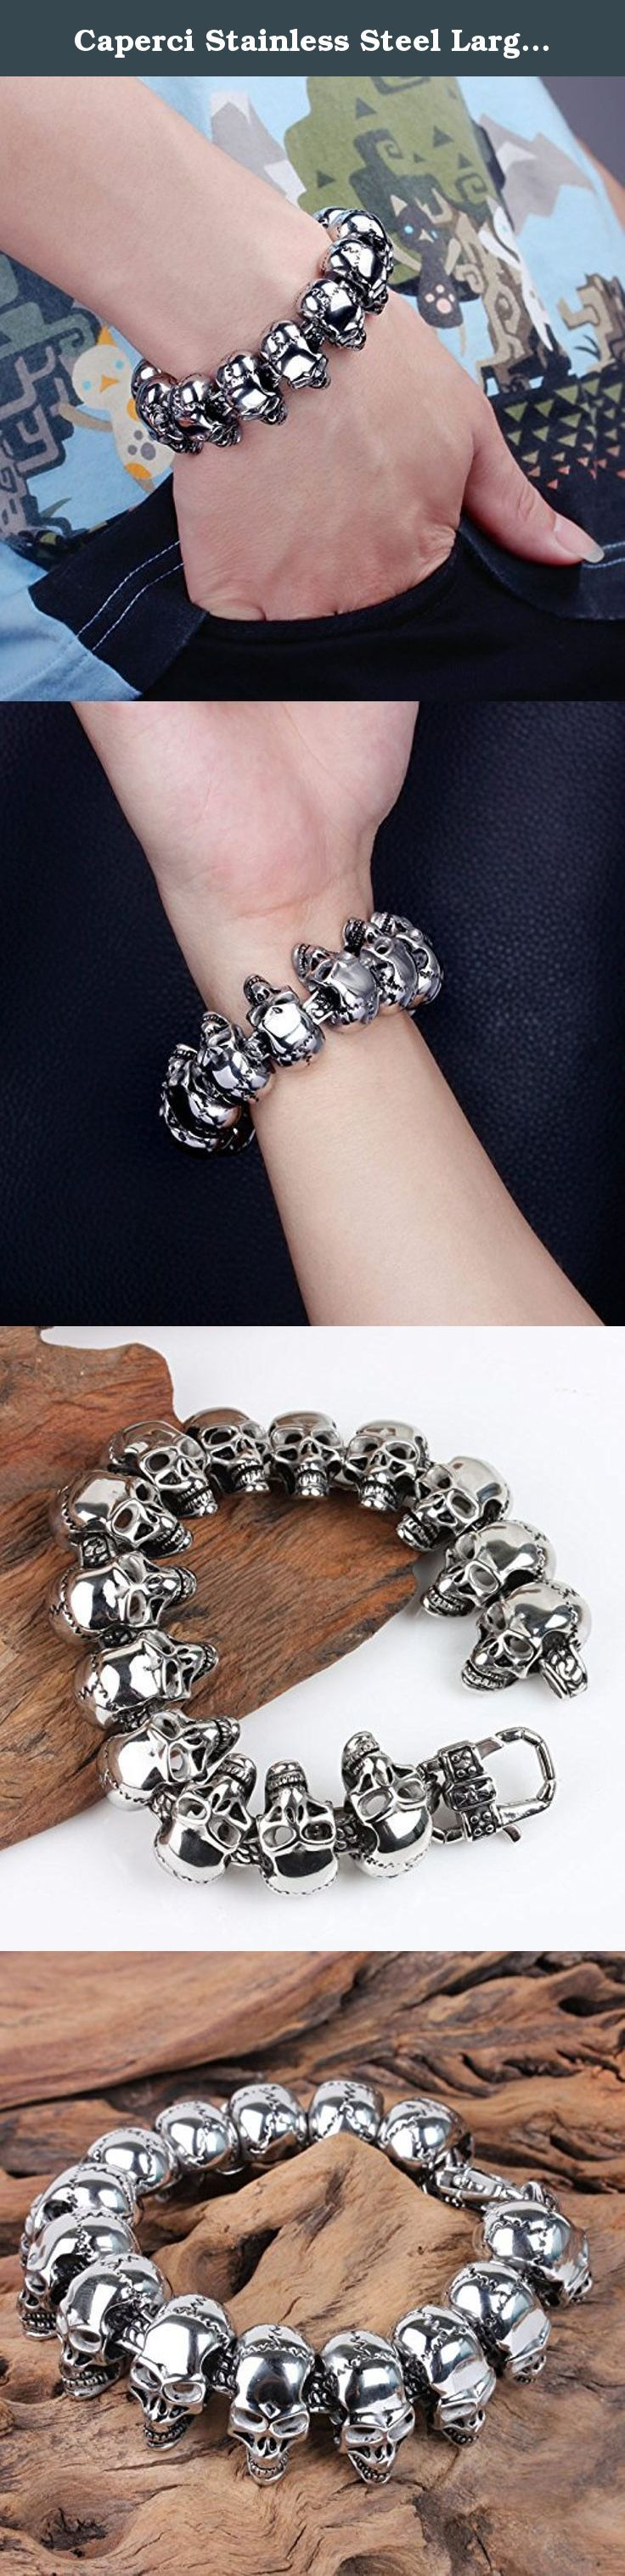 "Caperci Stainless Steel Large Gothic Biker Skull Men's Bracelet 8.5 Inch, Lobster Claw Clasp. About Caperci Caperci is offering the ""Exquisite, Fashion, Low Price, Happiness"" concept of branded, high quality jewelry at affordable price with cost-effective materials, such as tungsten, cobalt, sterling silver, stainless steel, titanium, cubic zirconia, crystal, genuine leather. During the last two decades, we've been OEM for major jewelry brands over the world. We thought we are not good..."